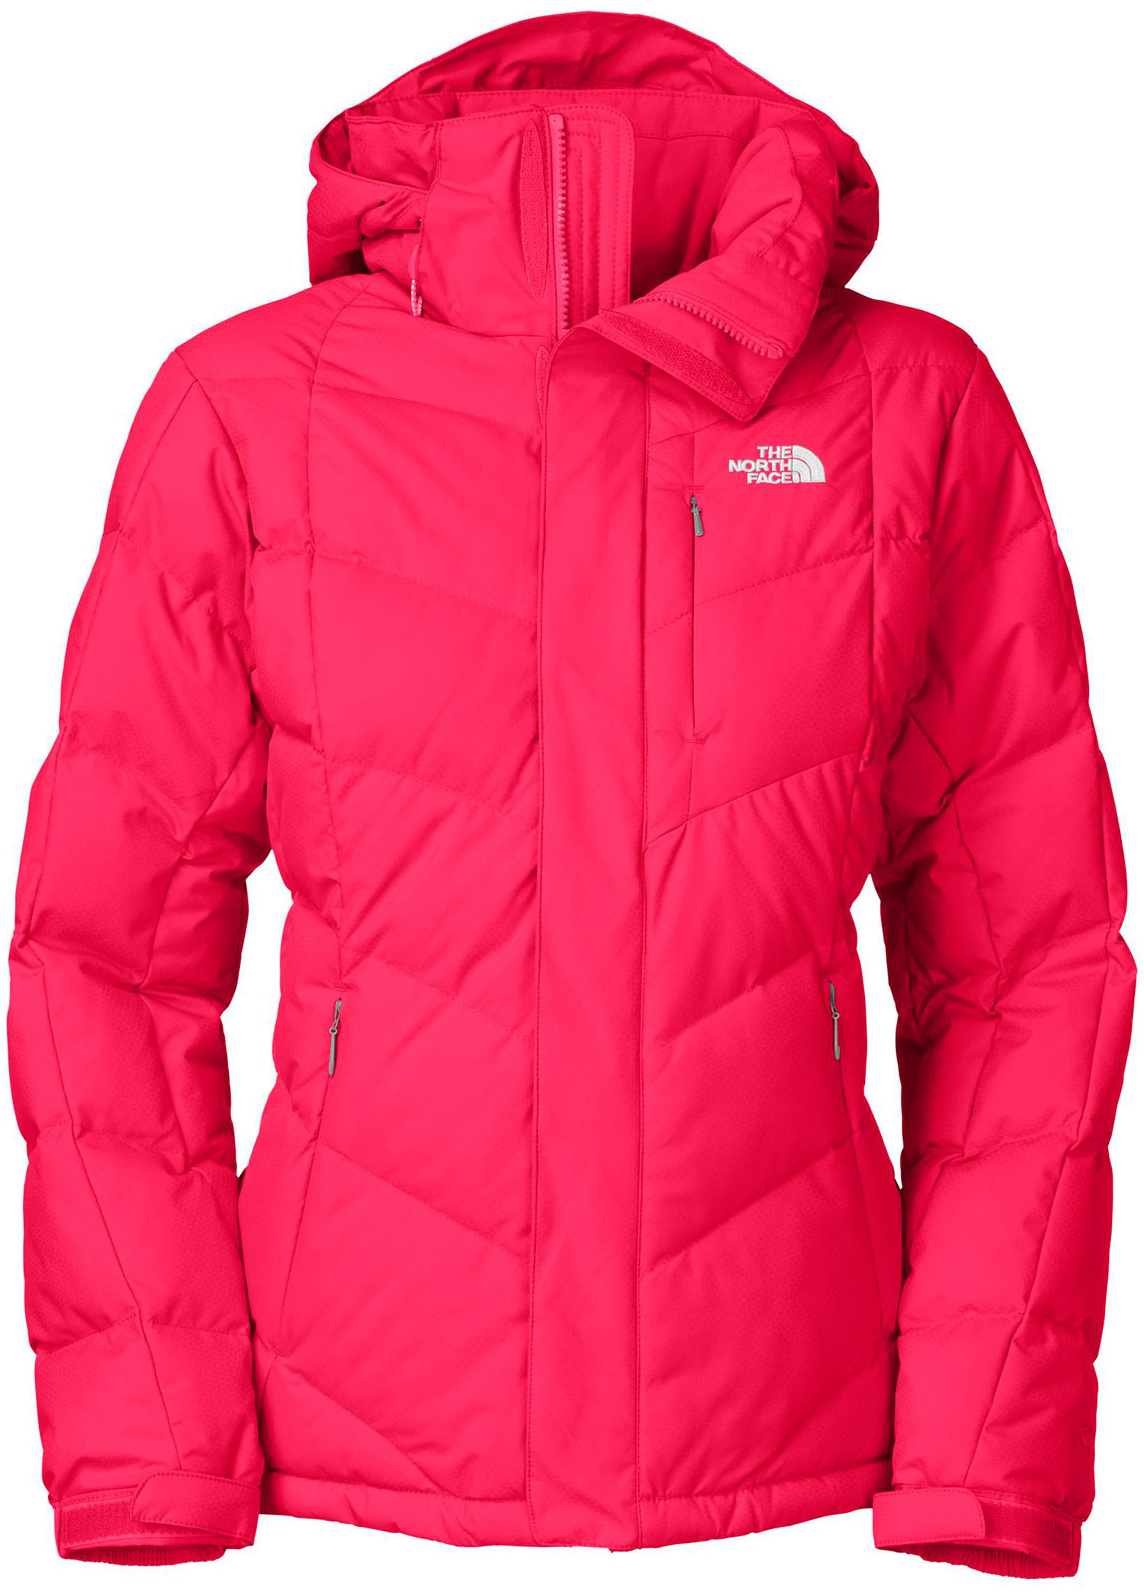 "Ski A fitted, performance down jacket infused with just the right amount of style.Key Features of The North Face Amore Down Ski Jacket: Avg Weight: 980 g (34.57 oz) Center back: 27.5"" Fabric: shell: 70D 115 g/m2 HyVent® 2L nylon dobby (bluesign® approved fabric) Insulation: 550 fill down Water-resistant, breathable Adjustable EZD-tach hood Invisible Napoleon zip pocket Handwarmer zip pockets Internal media security pocket Internal goggle pocket Powder skirt Adjustable hem system Adjustable cuff tabs Goggle cloth right hand pocket - $202.95"